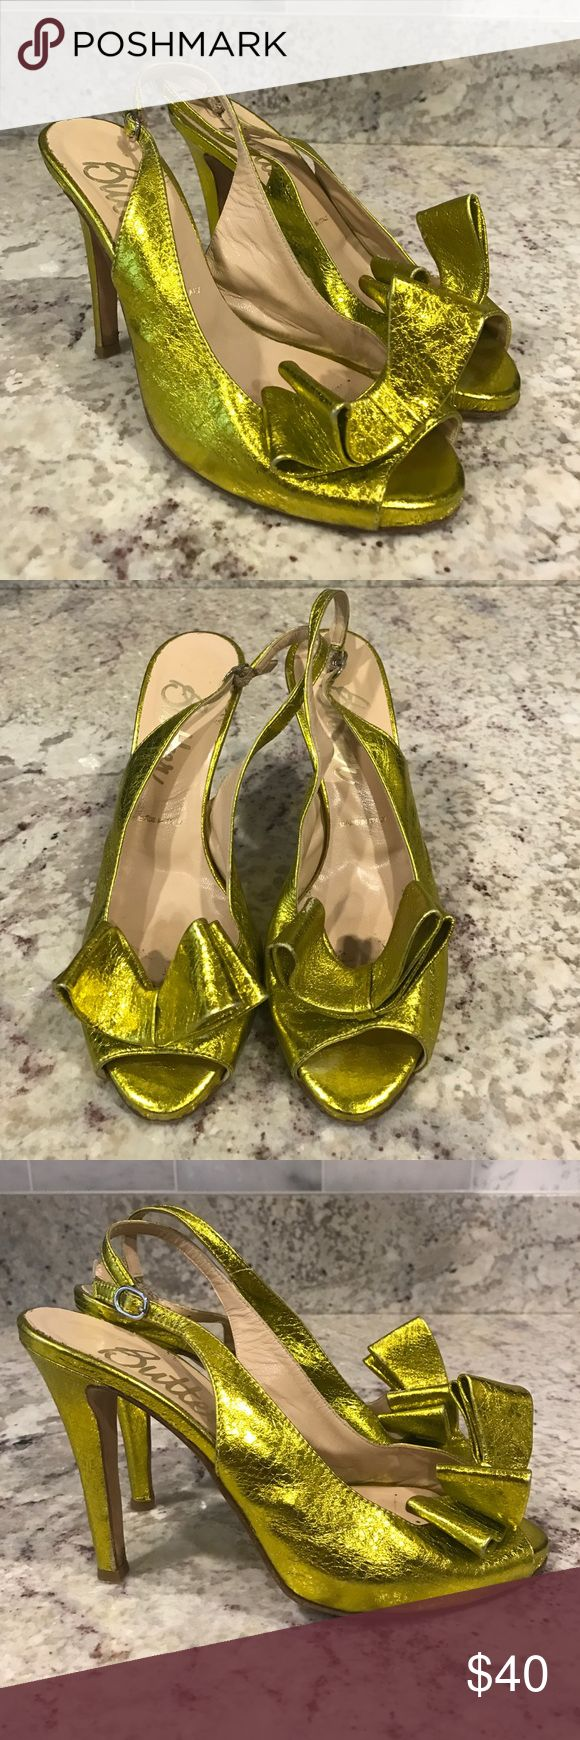 """Butter Shoes Yellow Gold Peep Toe Bow Heels Stunning metallic foil yellow / gold peep toe bow heels. Made in Italy. Ideal to wear to a festive event. Women's size 7. Heel is approx 3.5"""" Butter Shoes Shoes Heels"""